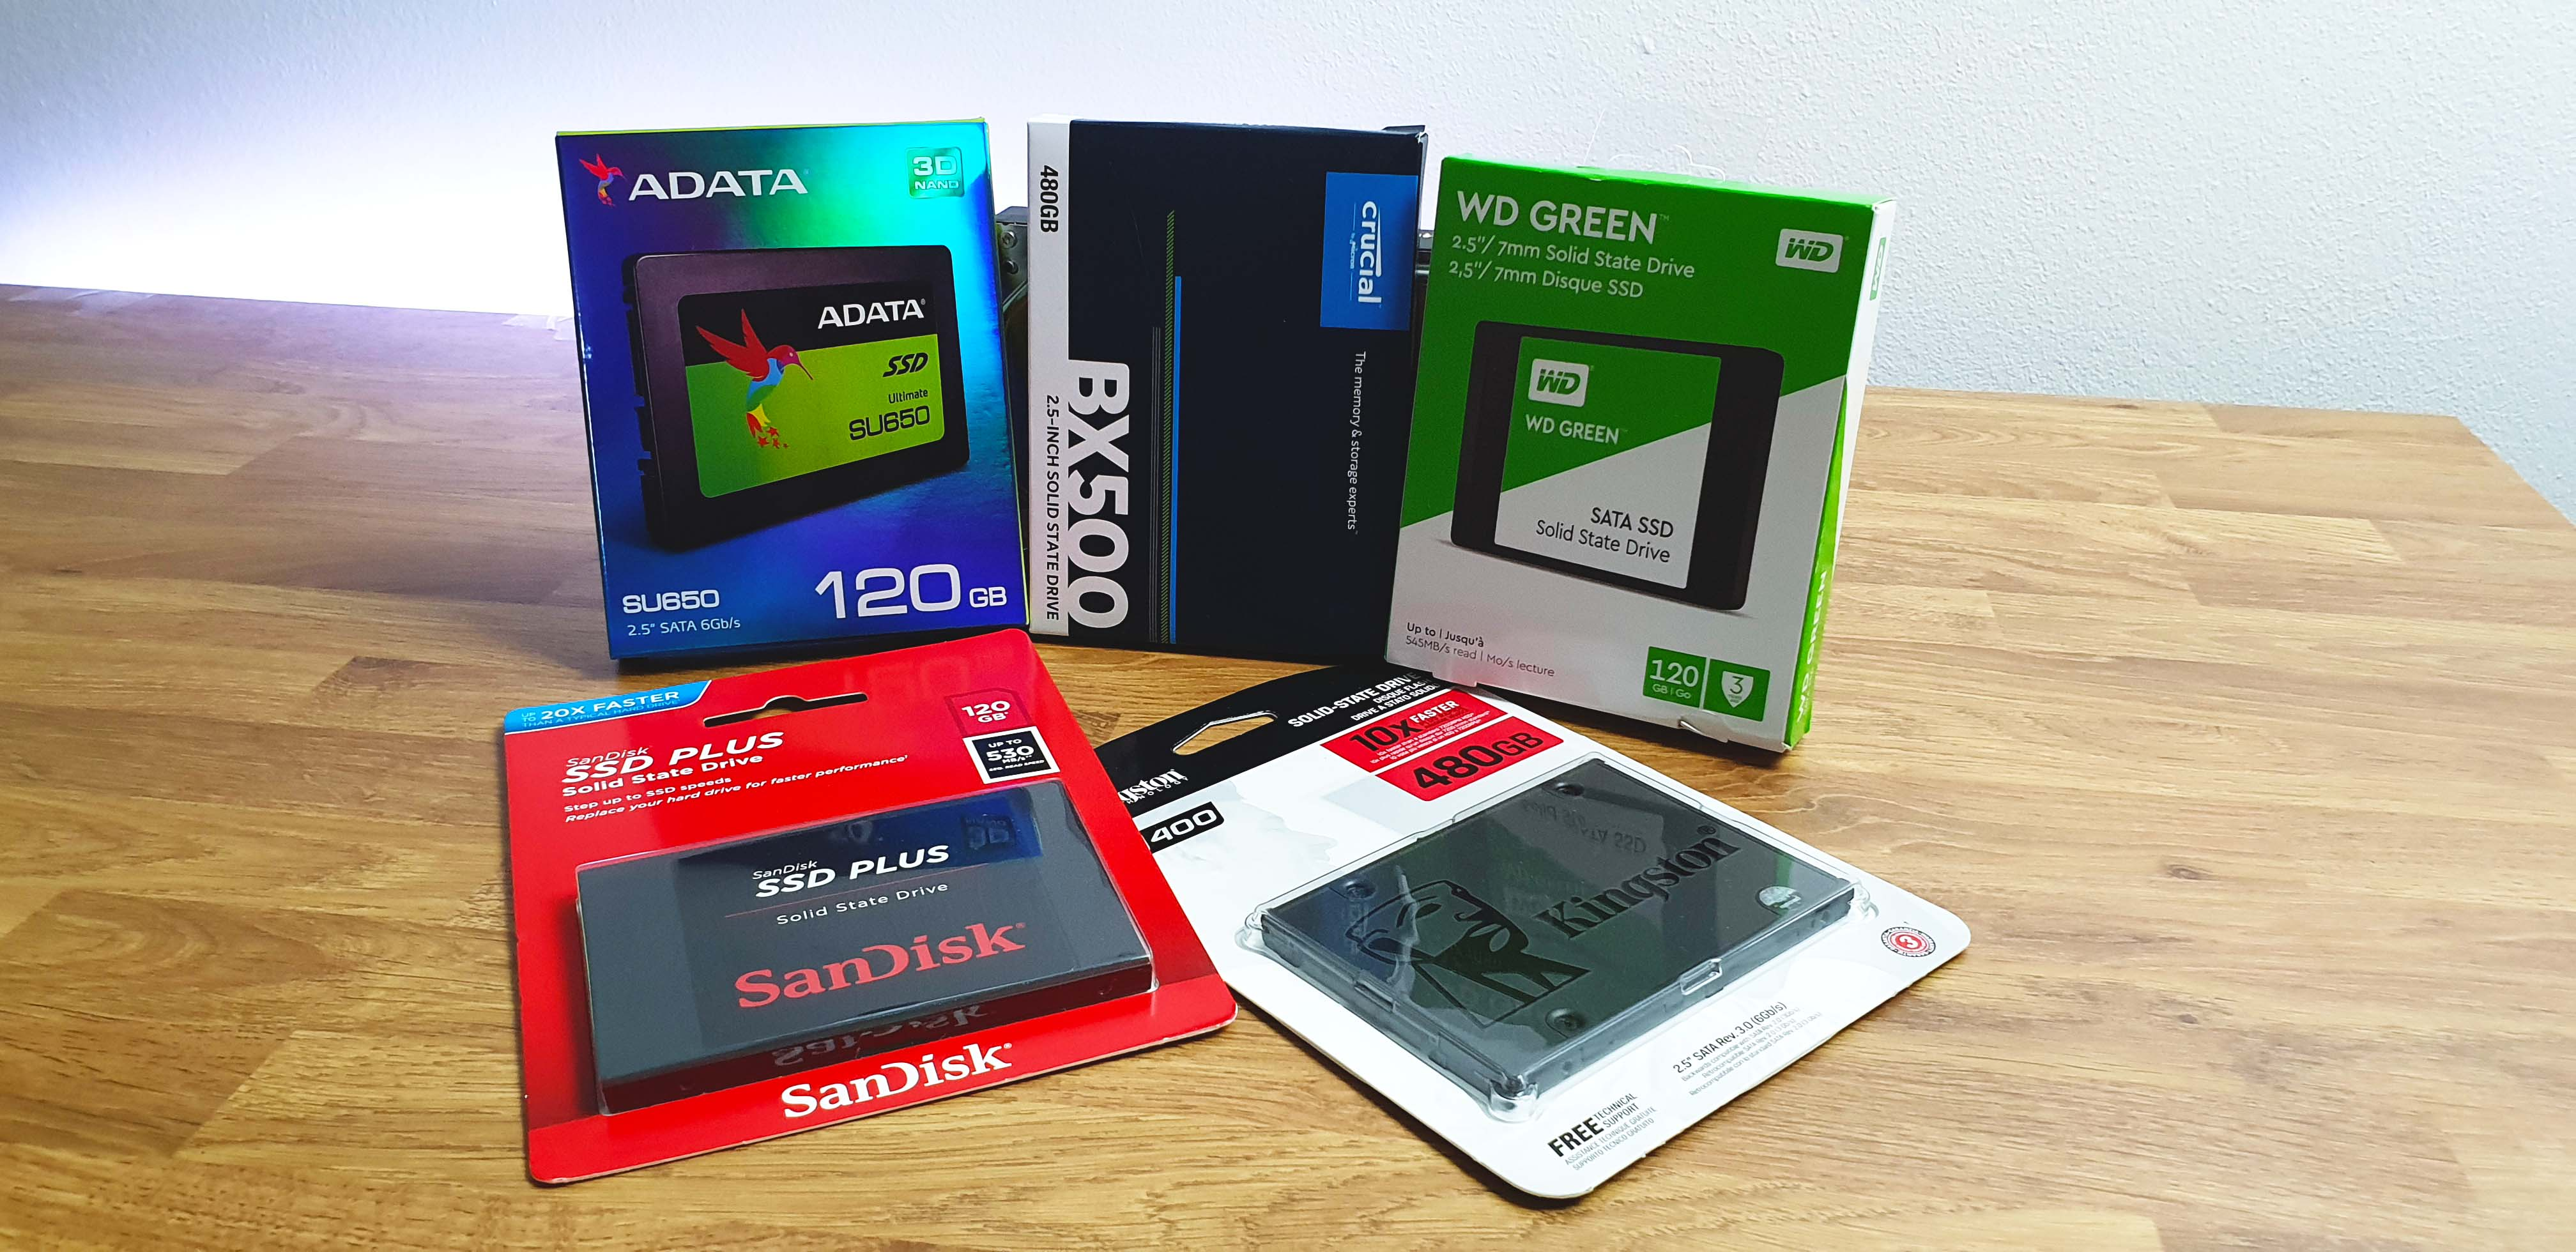 Ssd Value Roundup Crucial Bx500 Best Bang For Buck Kingston A400 120gb Sata Iii When Ssds Solid State Drives First Came Out As Per Any New Tech They Were Expensive Because Finally Promised Us The Revolution We Expecting